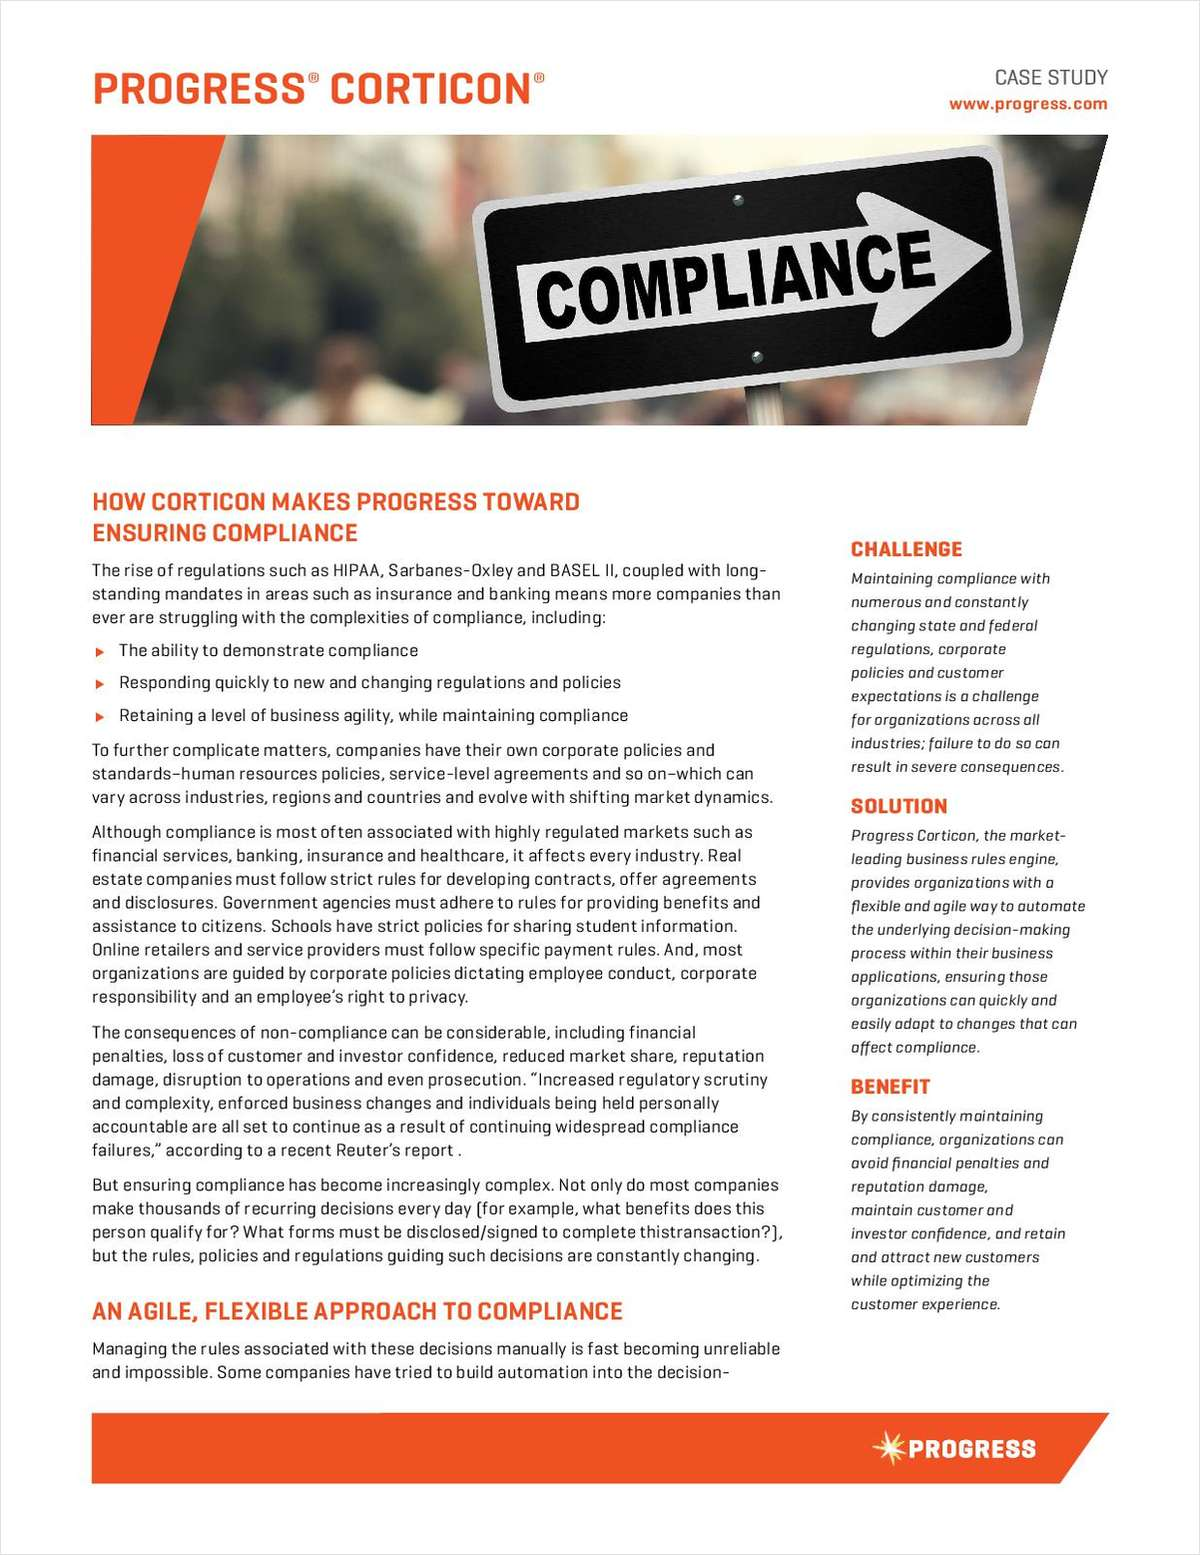 Ensuring Compliance Though Technology